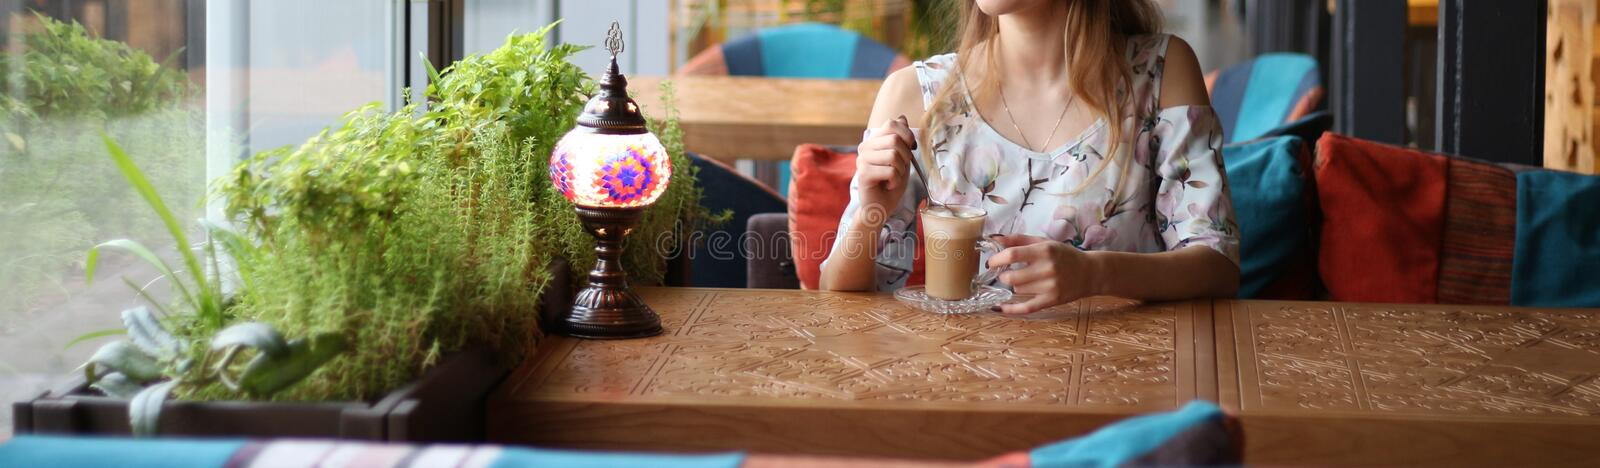 Girl in a dress sitting at a table in a cafe and drinking coffee, waiting for a meeting, a date. Dressed in a white dress with blue and pink flowers, sits by stock images